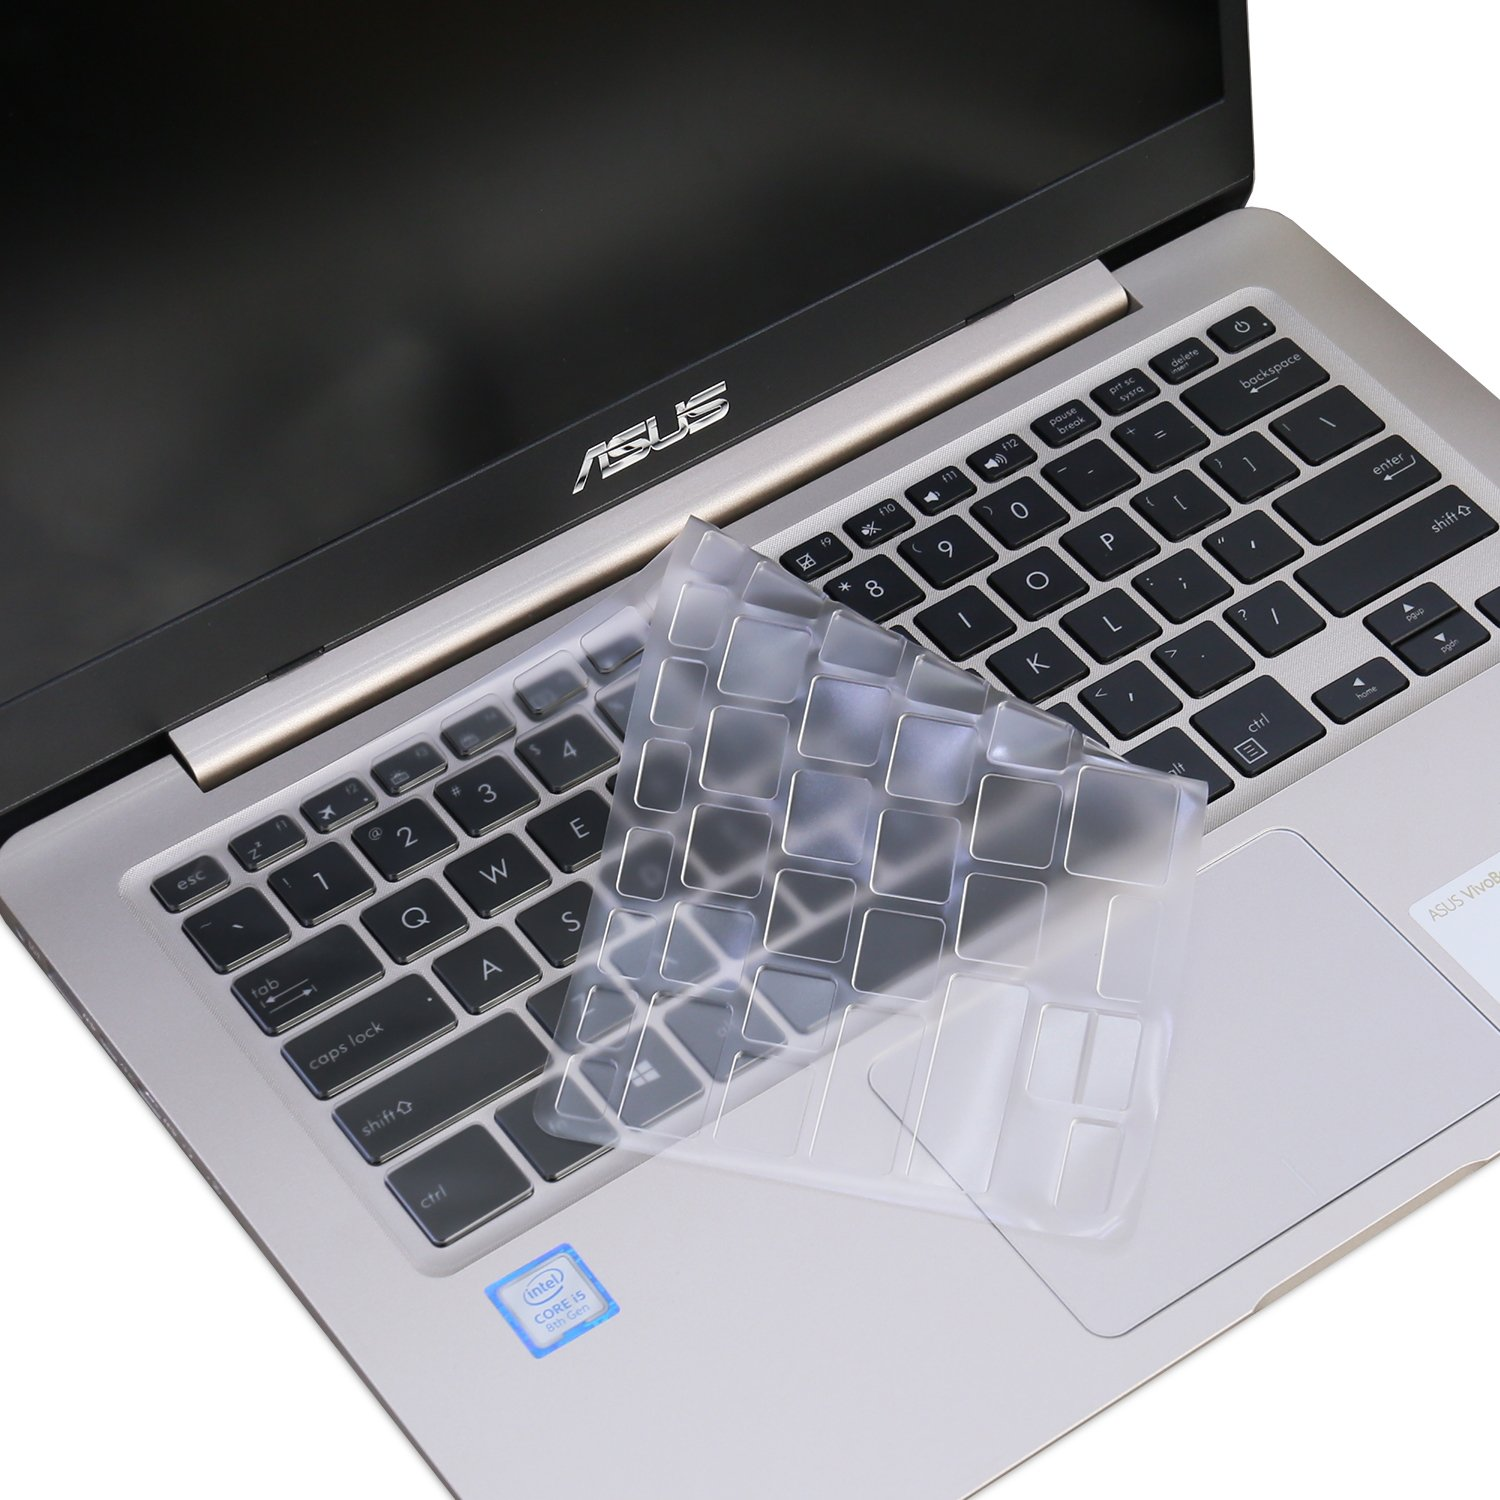 Amazon.com: Keyboard Cover Premium TPU Keyboard Skins Protector for ASUS VivoBook F441 Light (Clear): Computers & Accessories